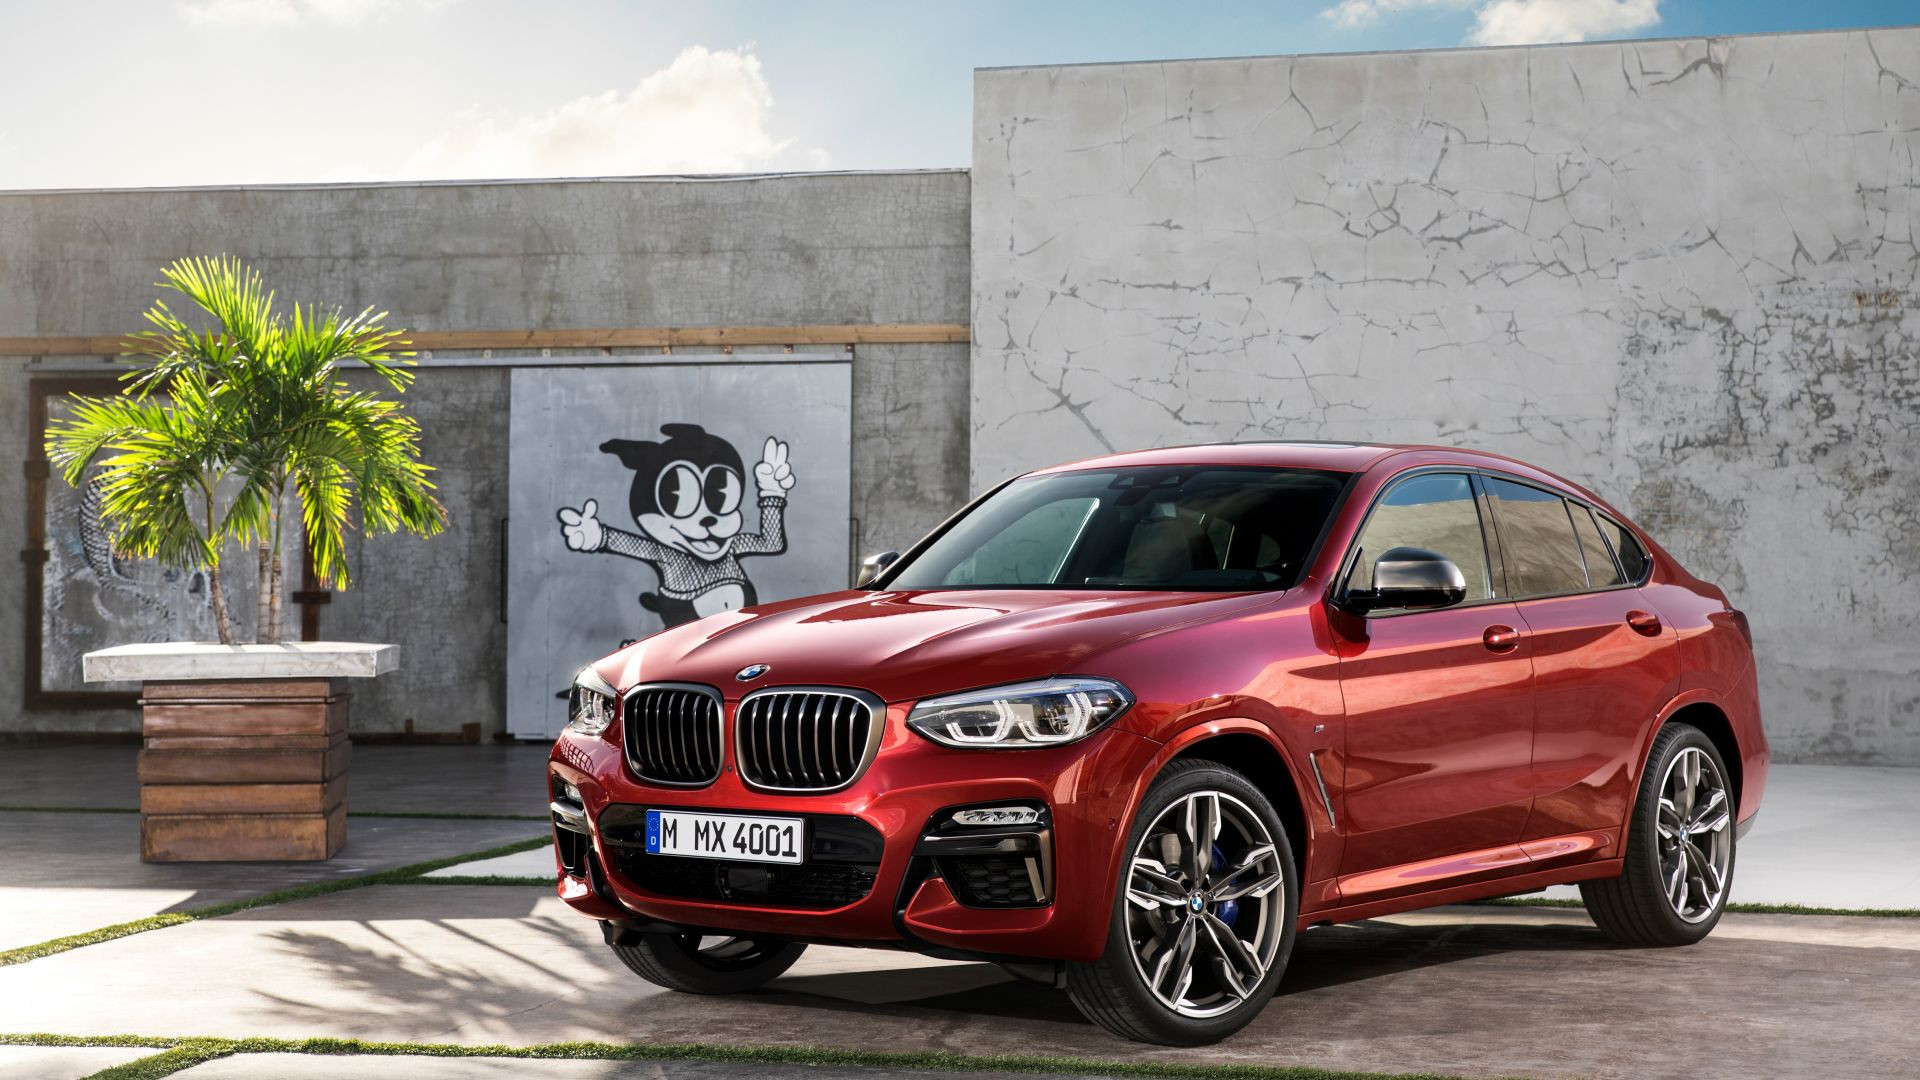 Wallpaper Bmw X4 2018 Cars 4k Cars Amp Bikes 17530